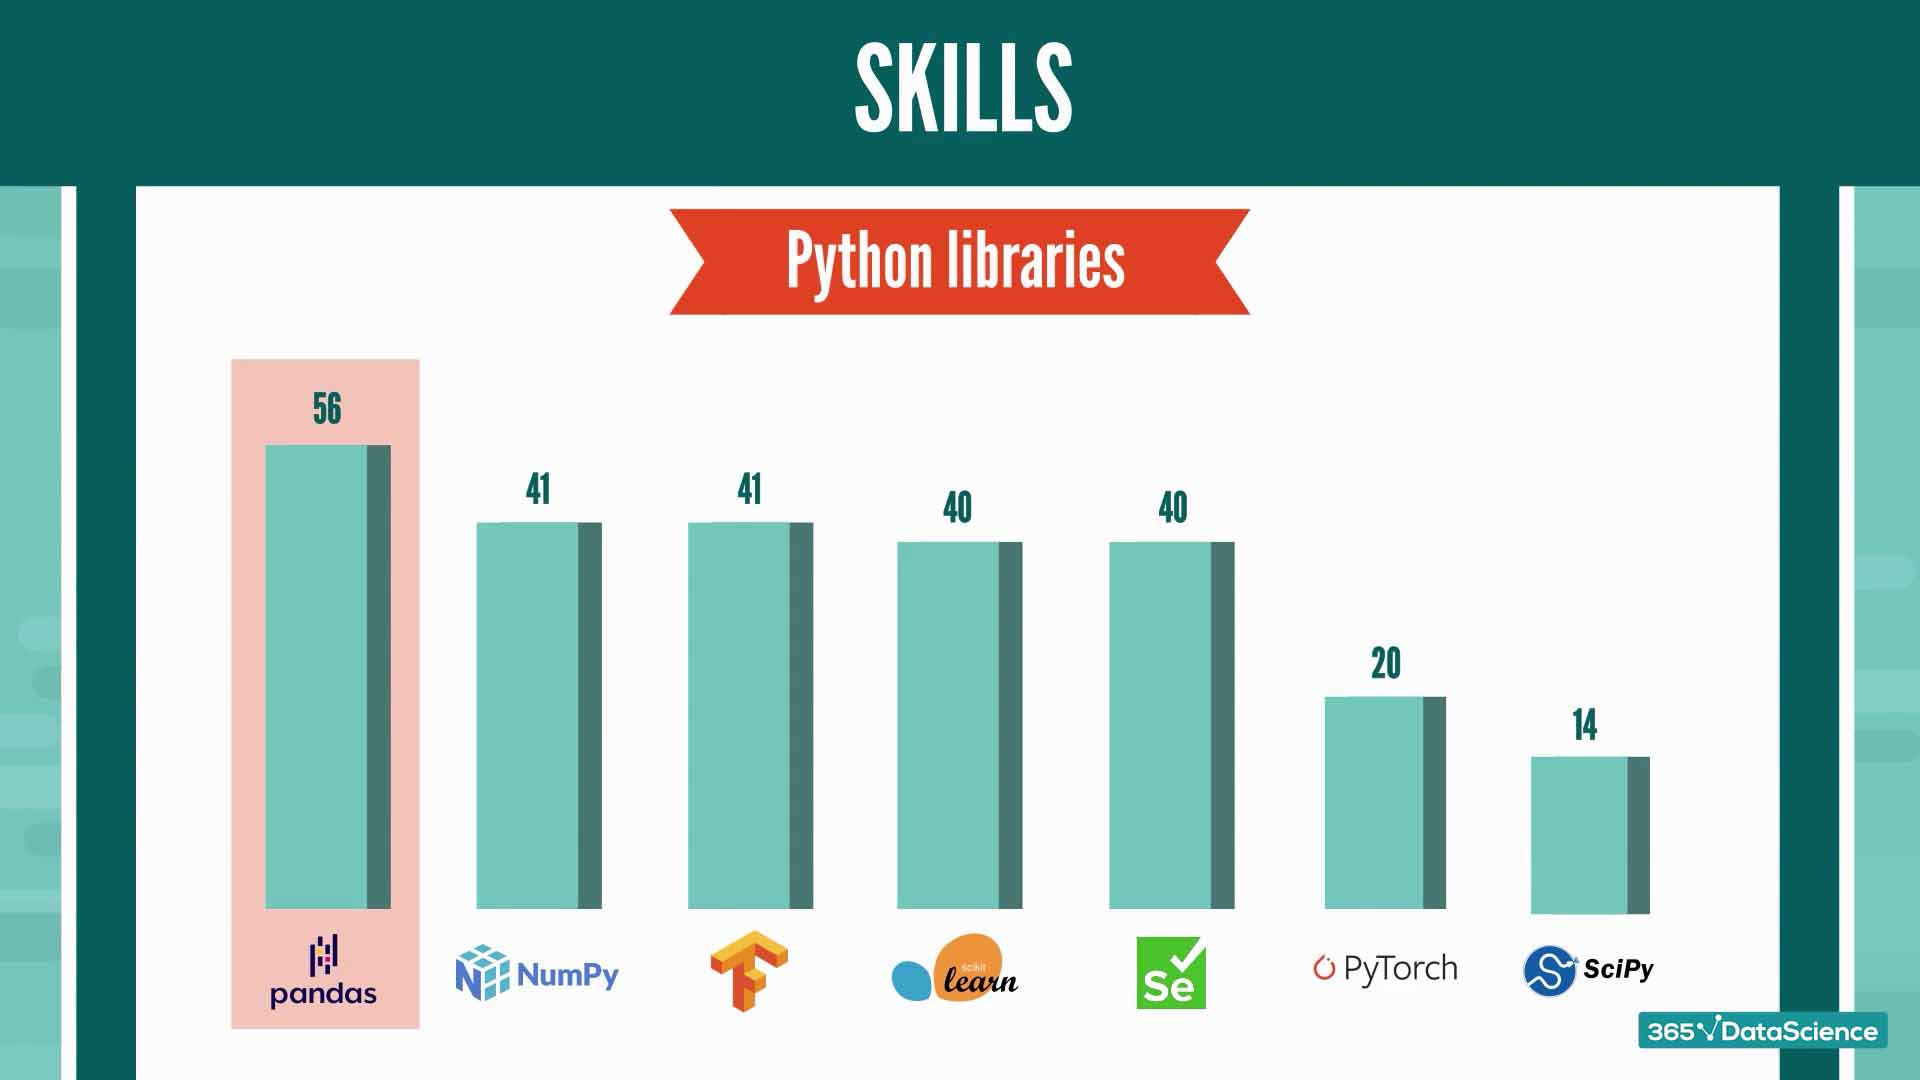 Most sought-after Python libraries for Python jobs